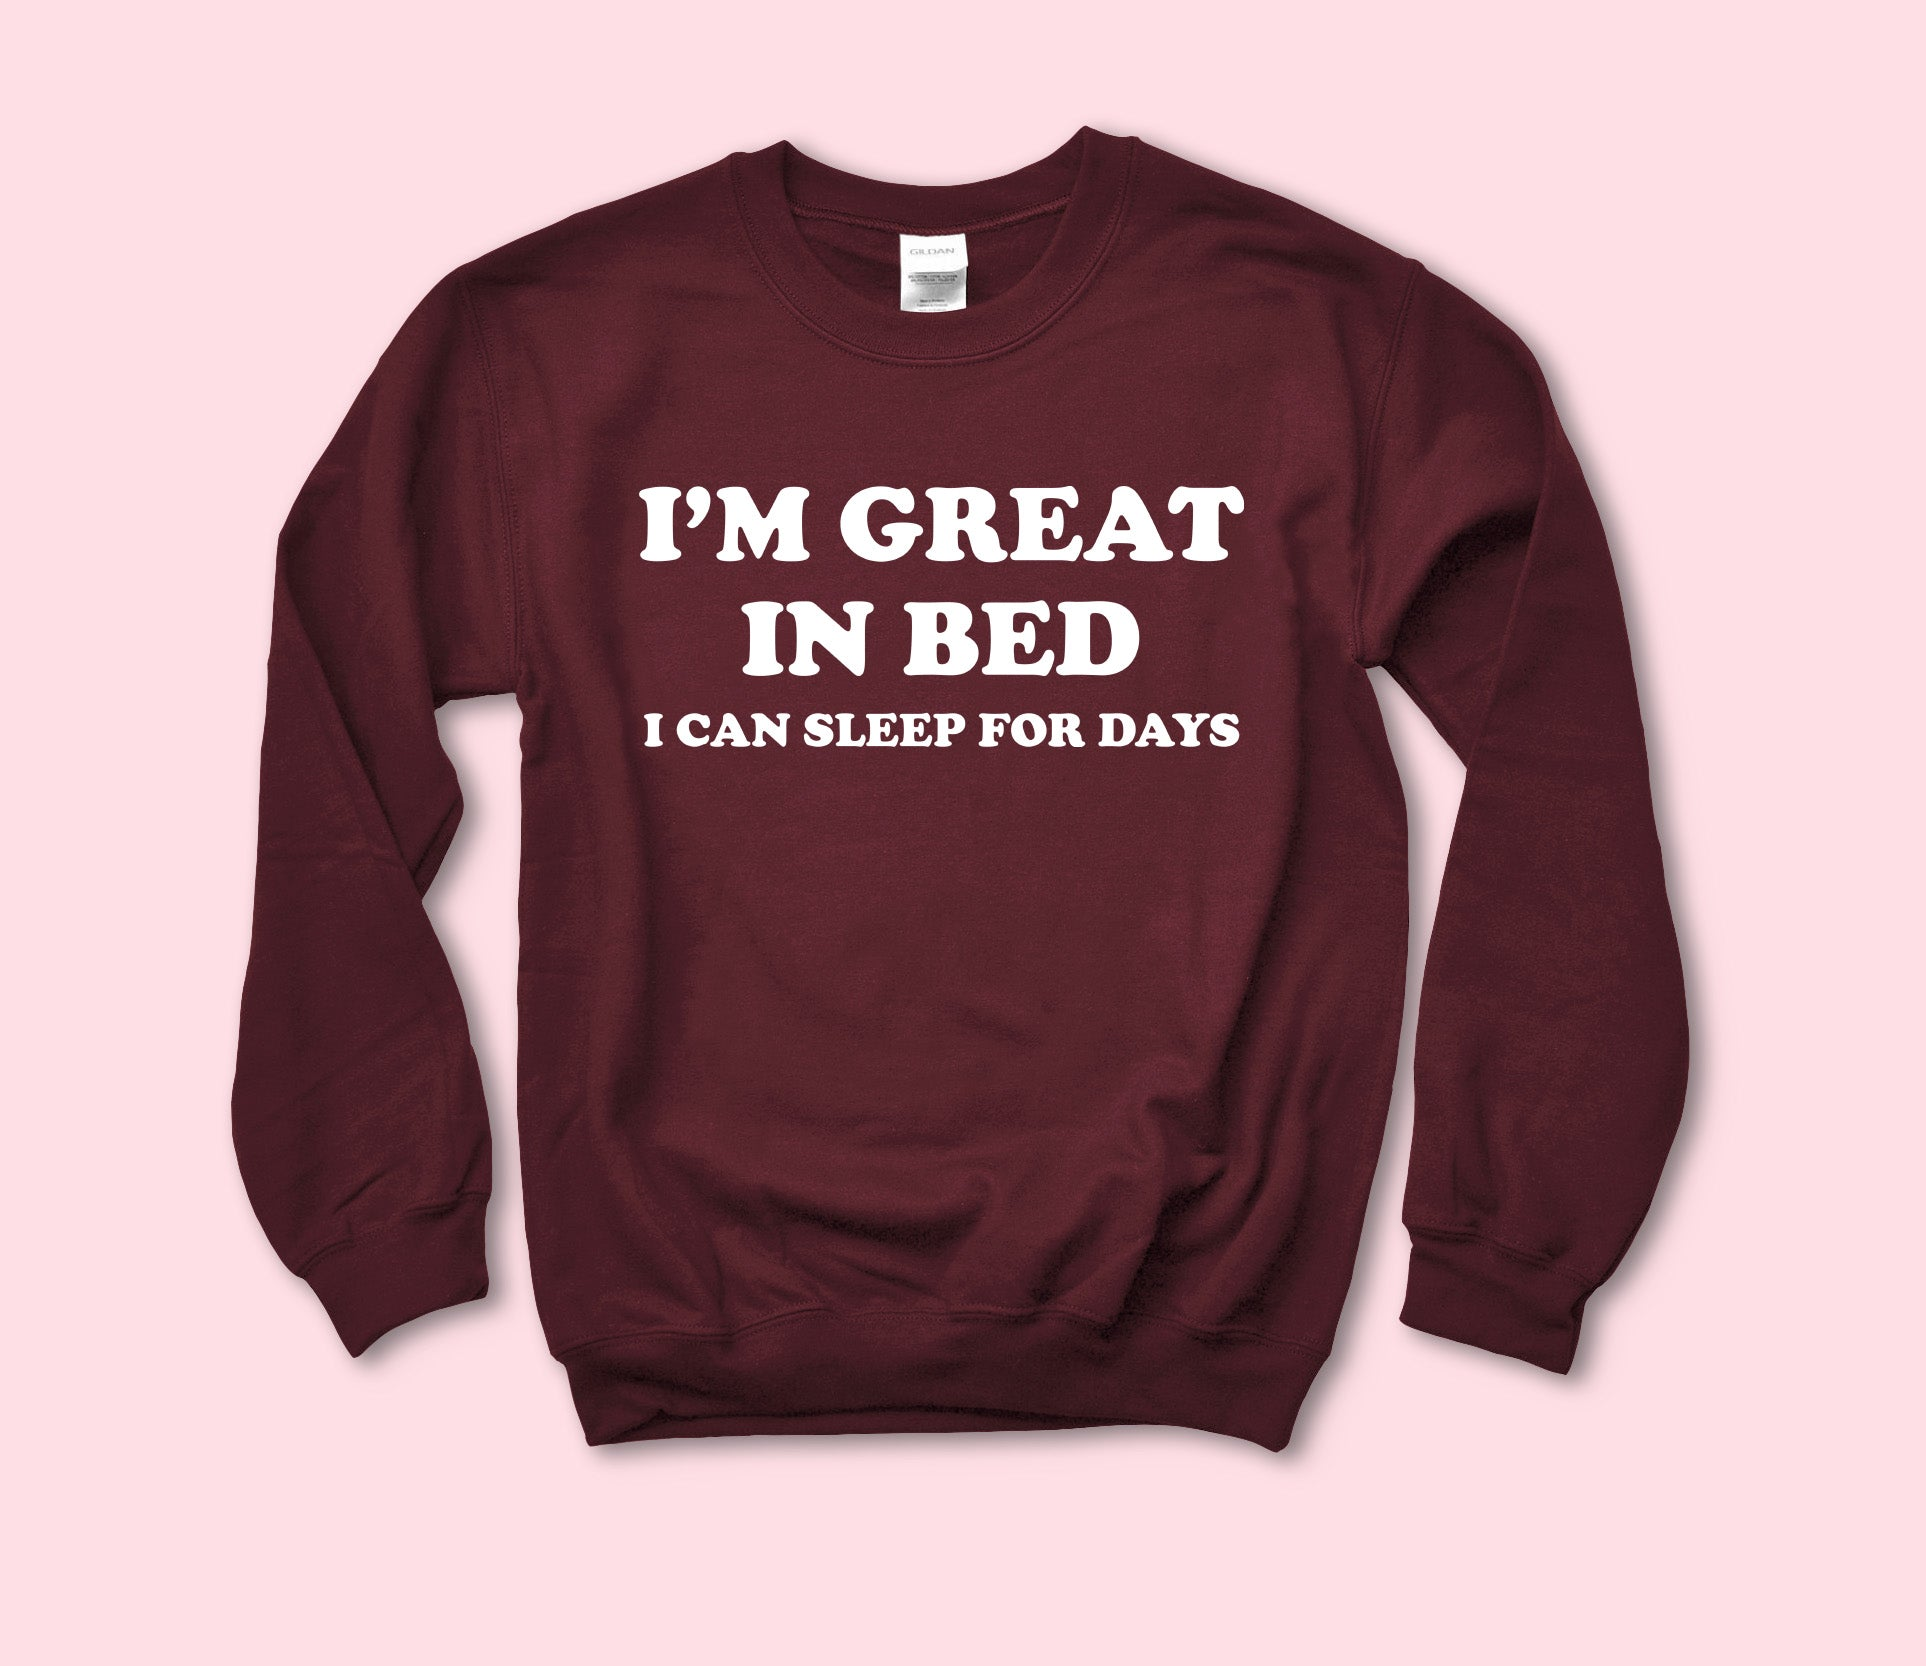 I'm Great In Bed Sweatshirt